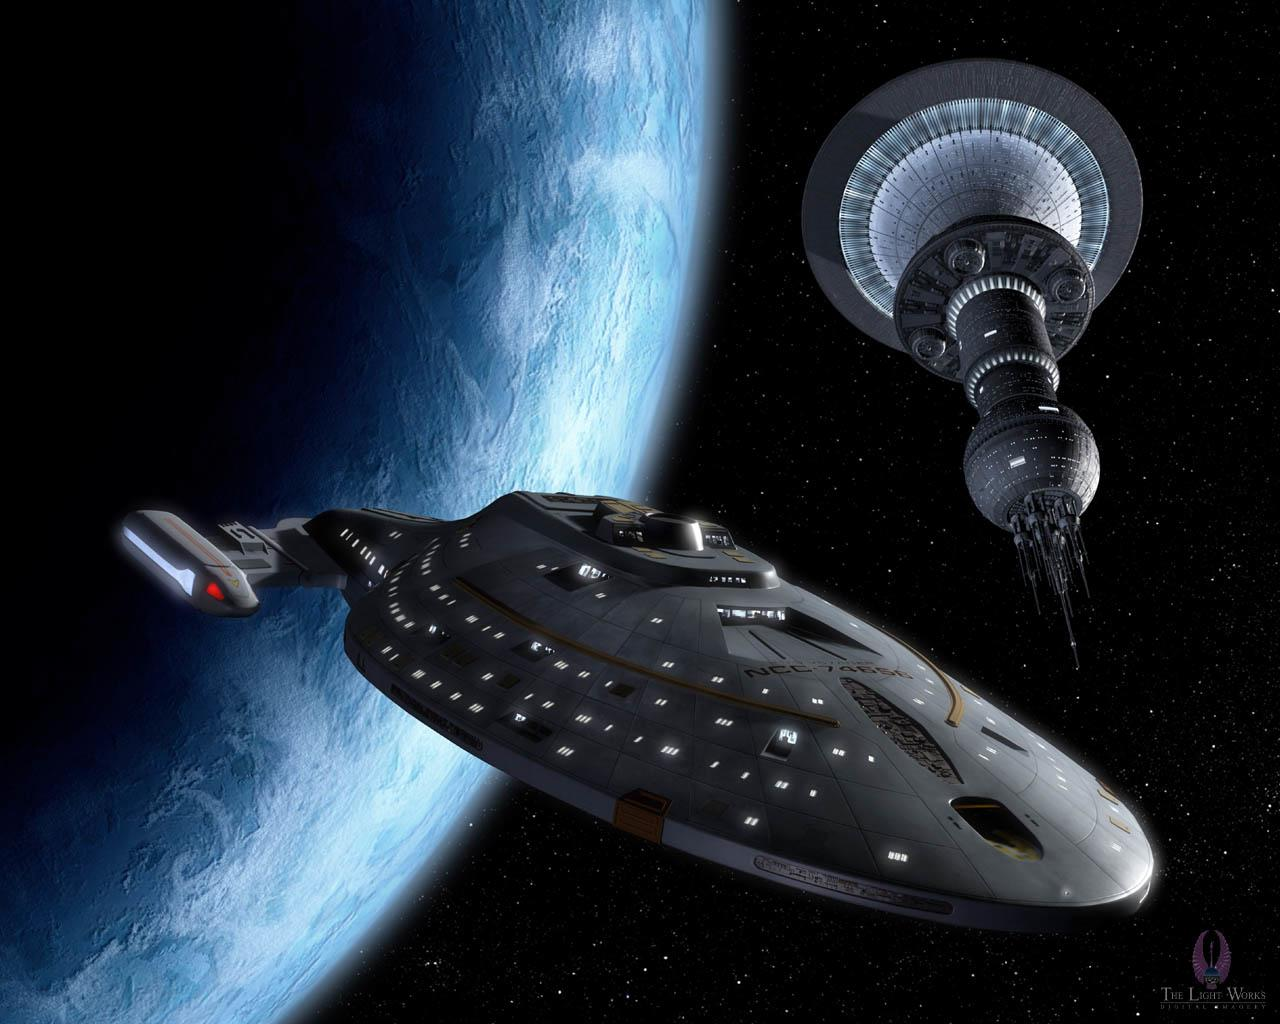 Star Trek The Original Series wallpapers HD quality